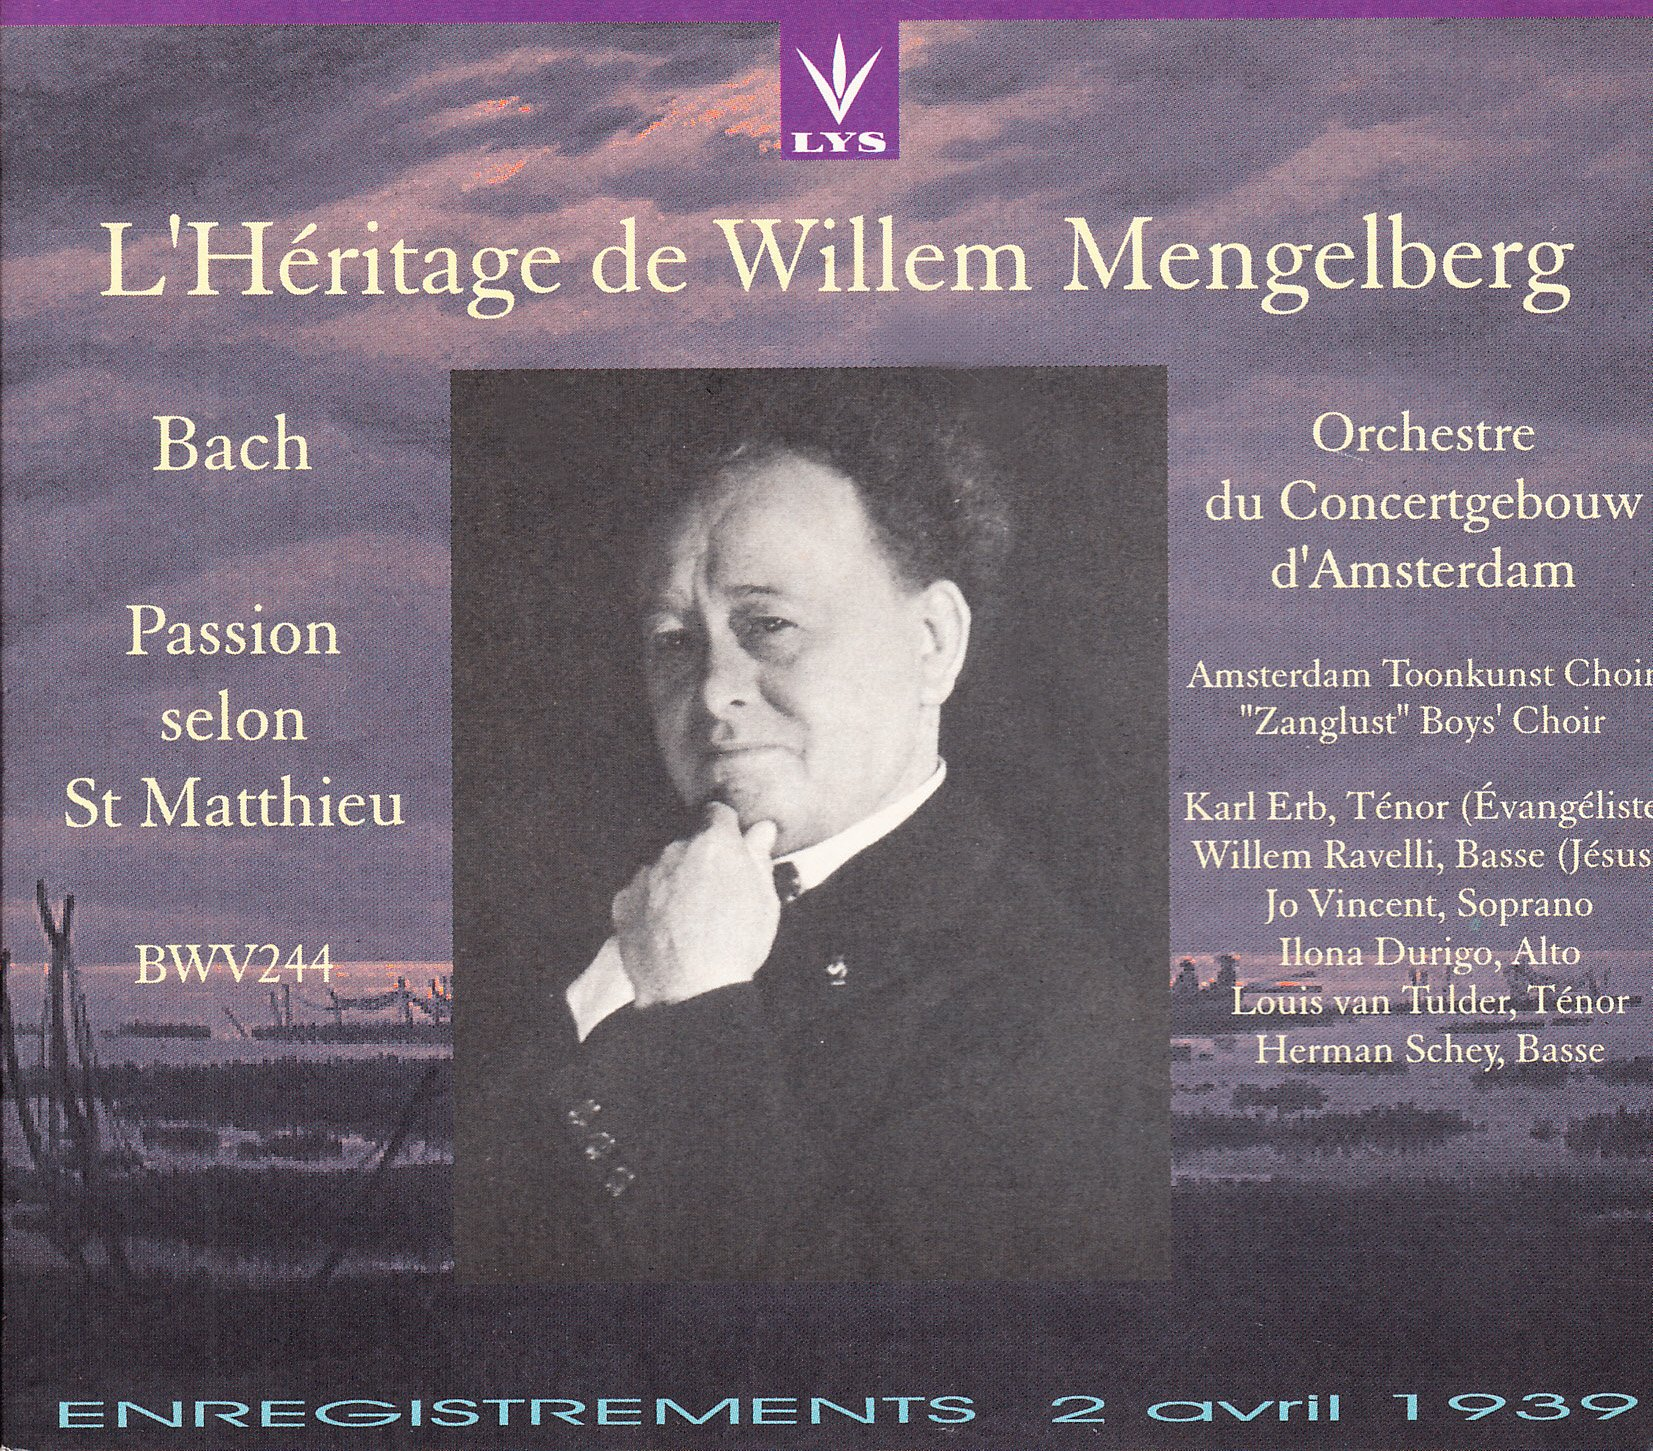 Bach: St Matthew Passion (L'Heritage de Willem Mengelberg, Enregistrements 2 Avril 1939) (Lys) by Lys